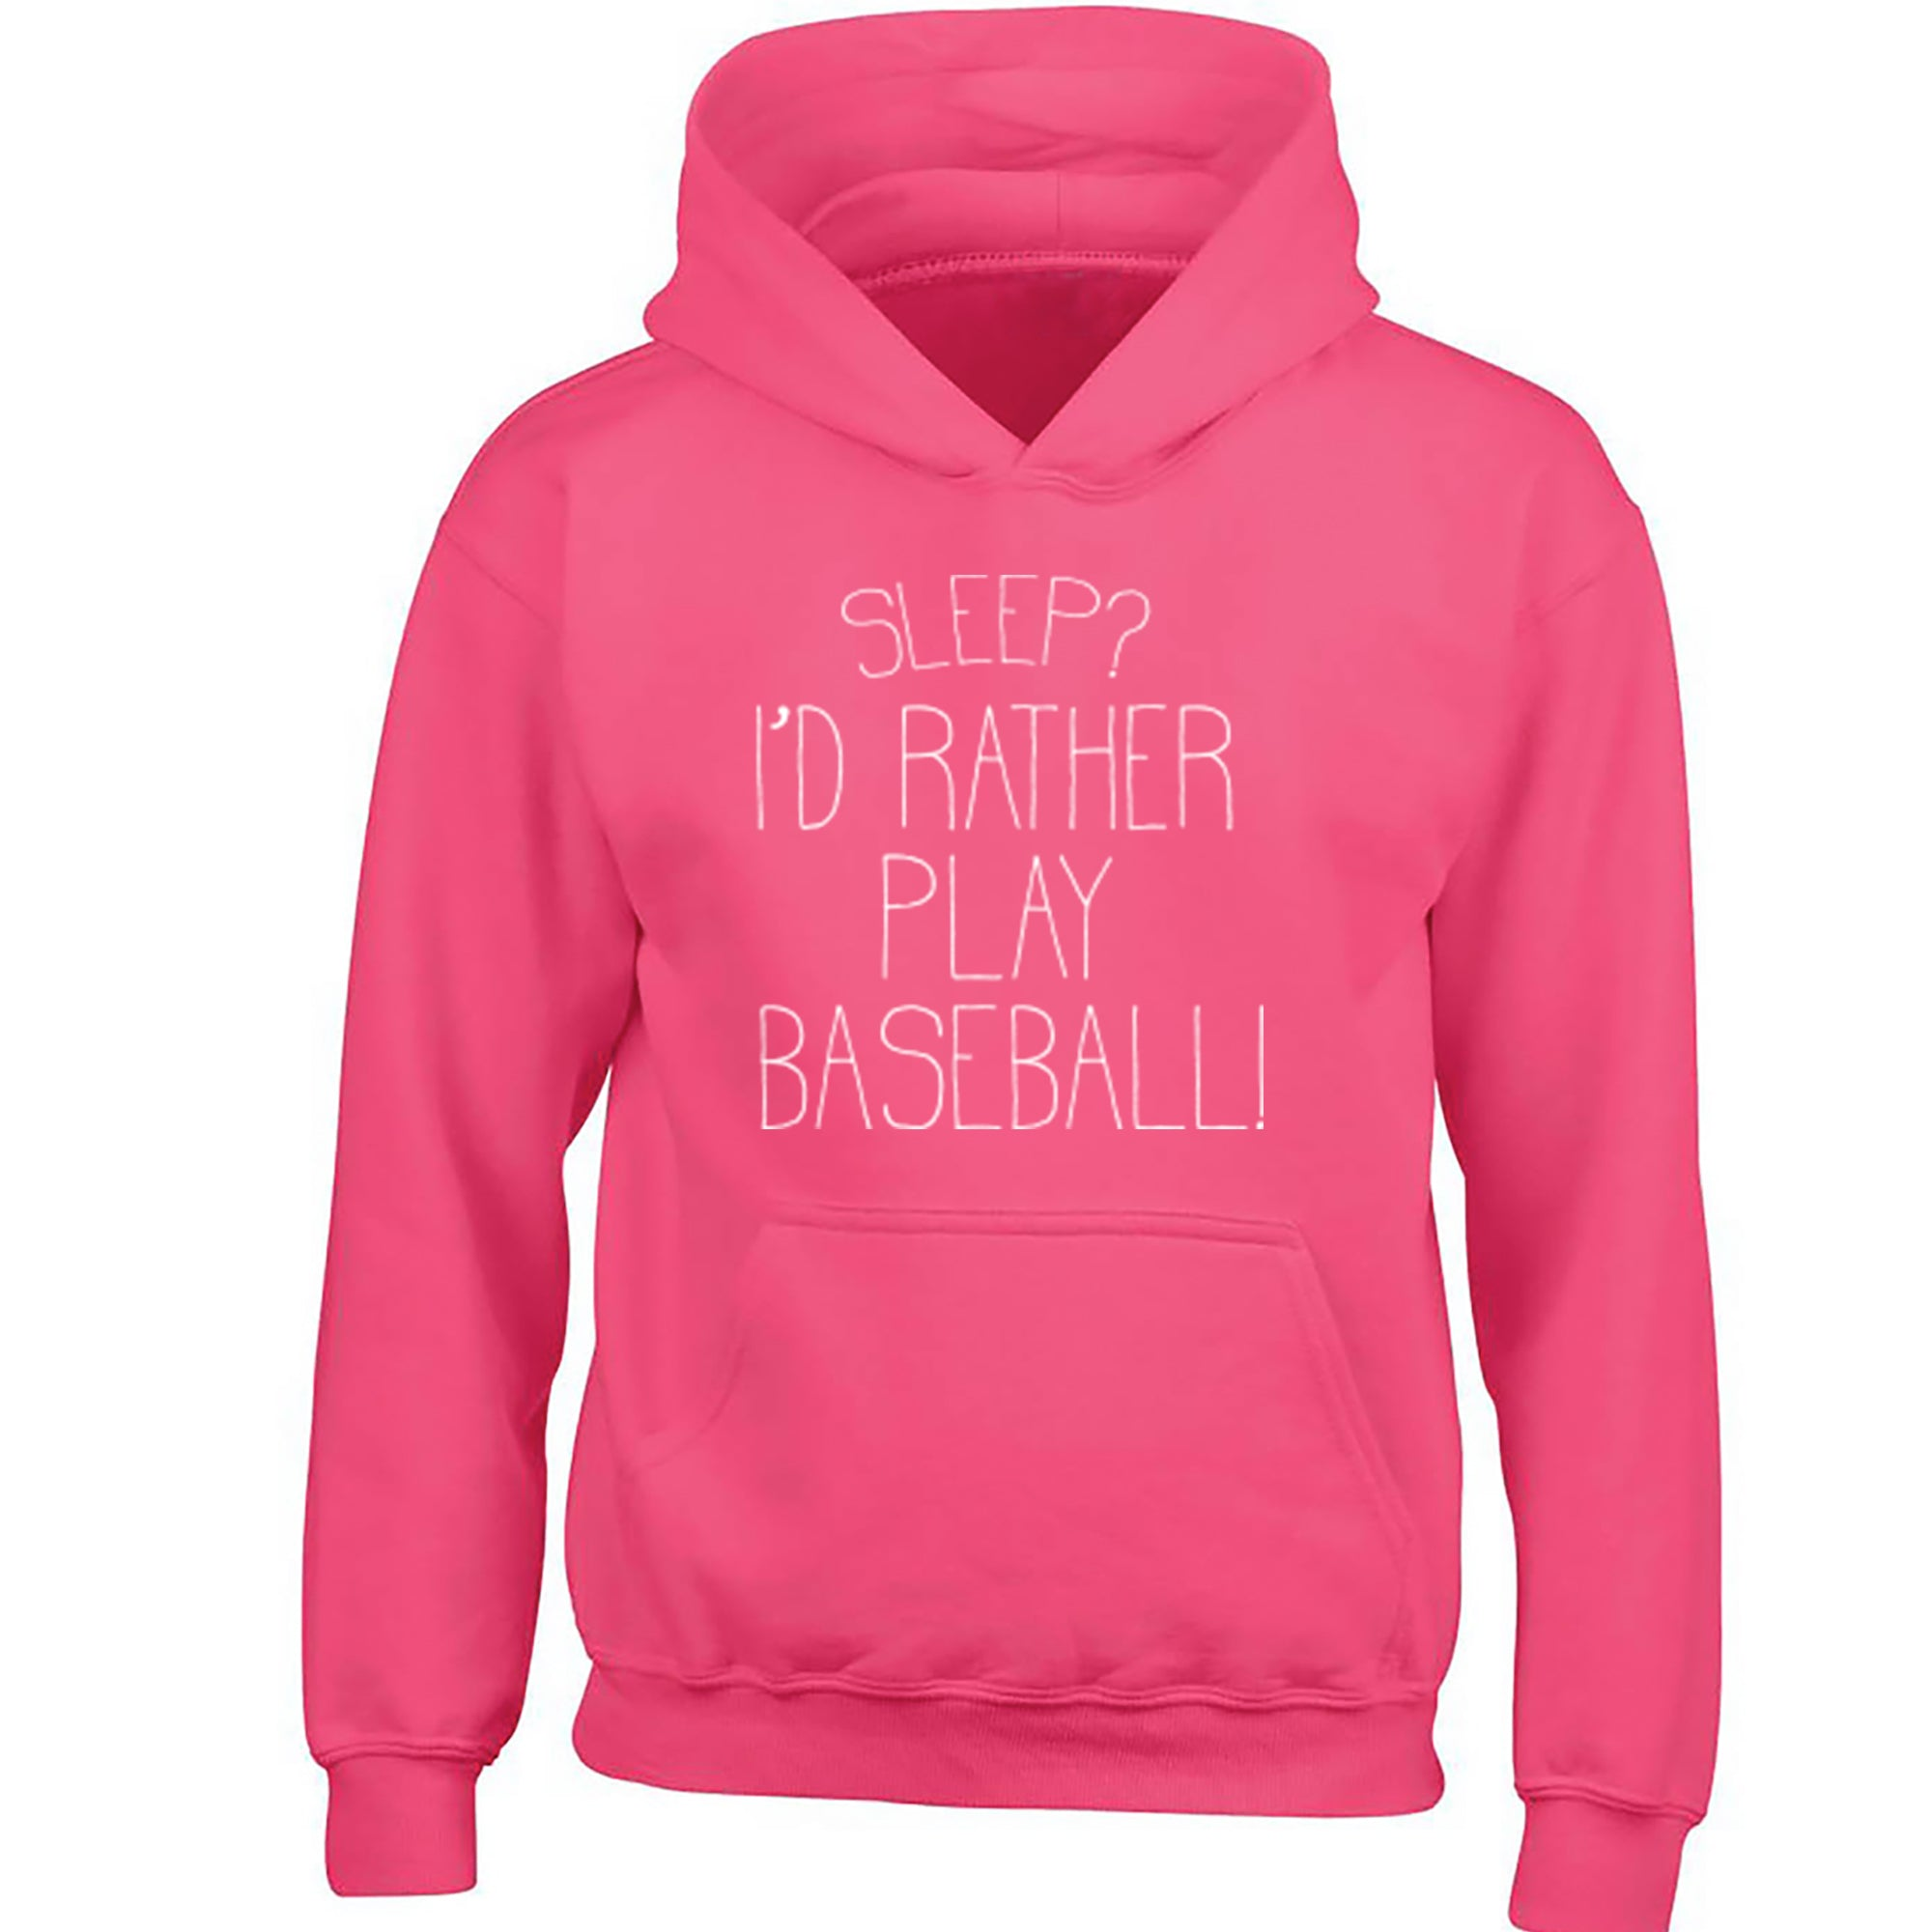 Sleep? I'd Rather Play Baseball Childrens Ages 3/4-12/14 Unisex Hoodie S0469 - Illustrated Identity Ltd.